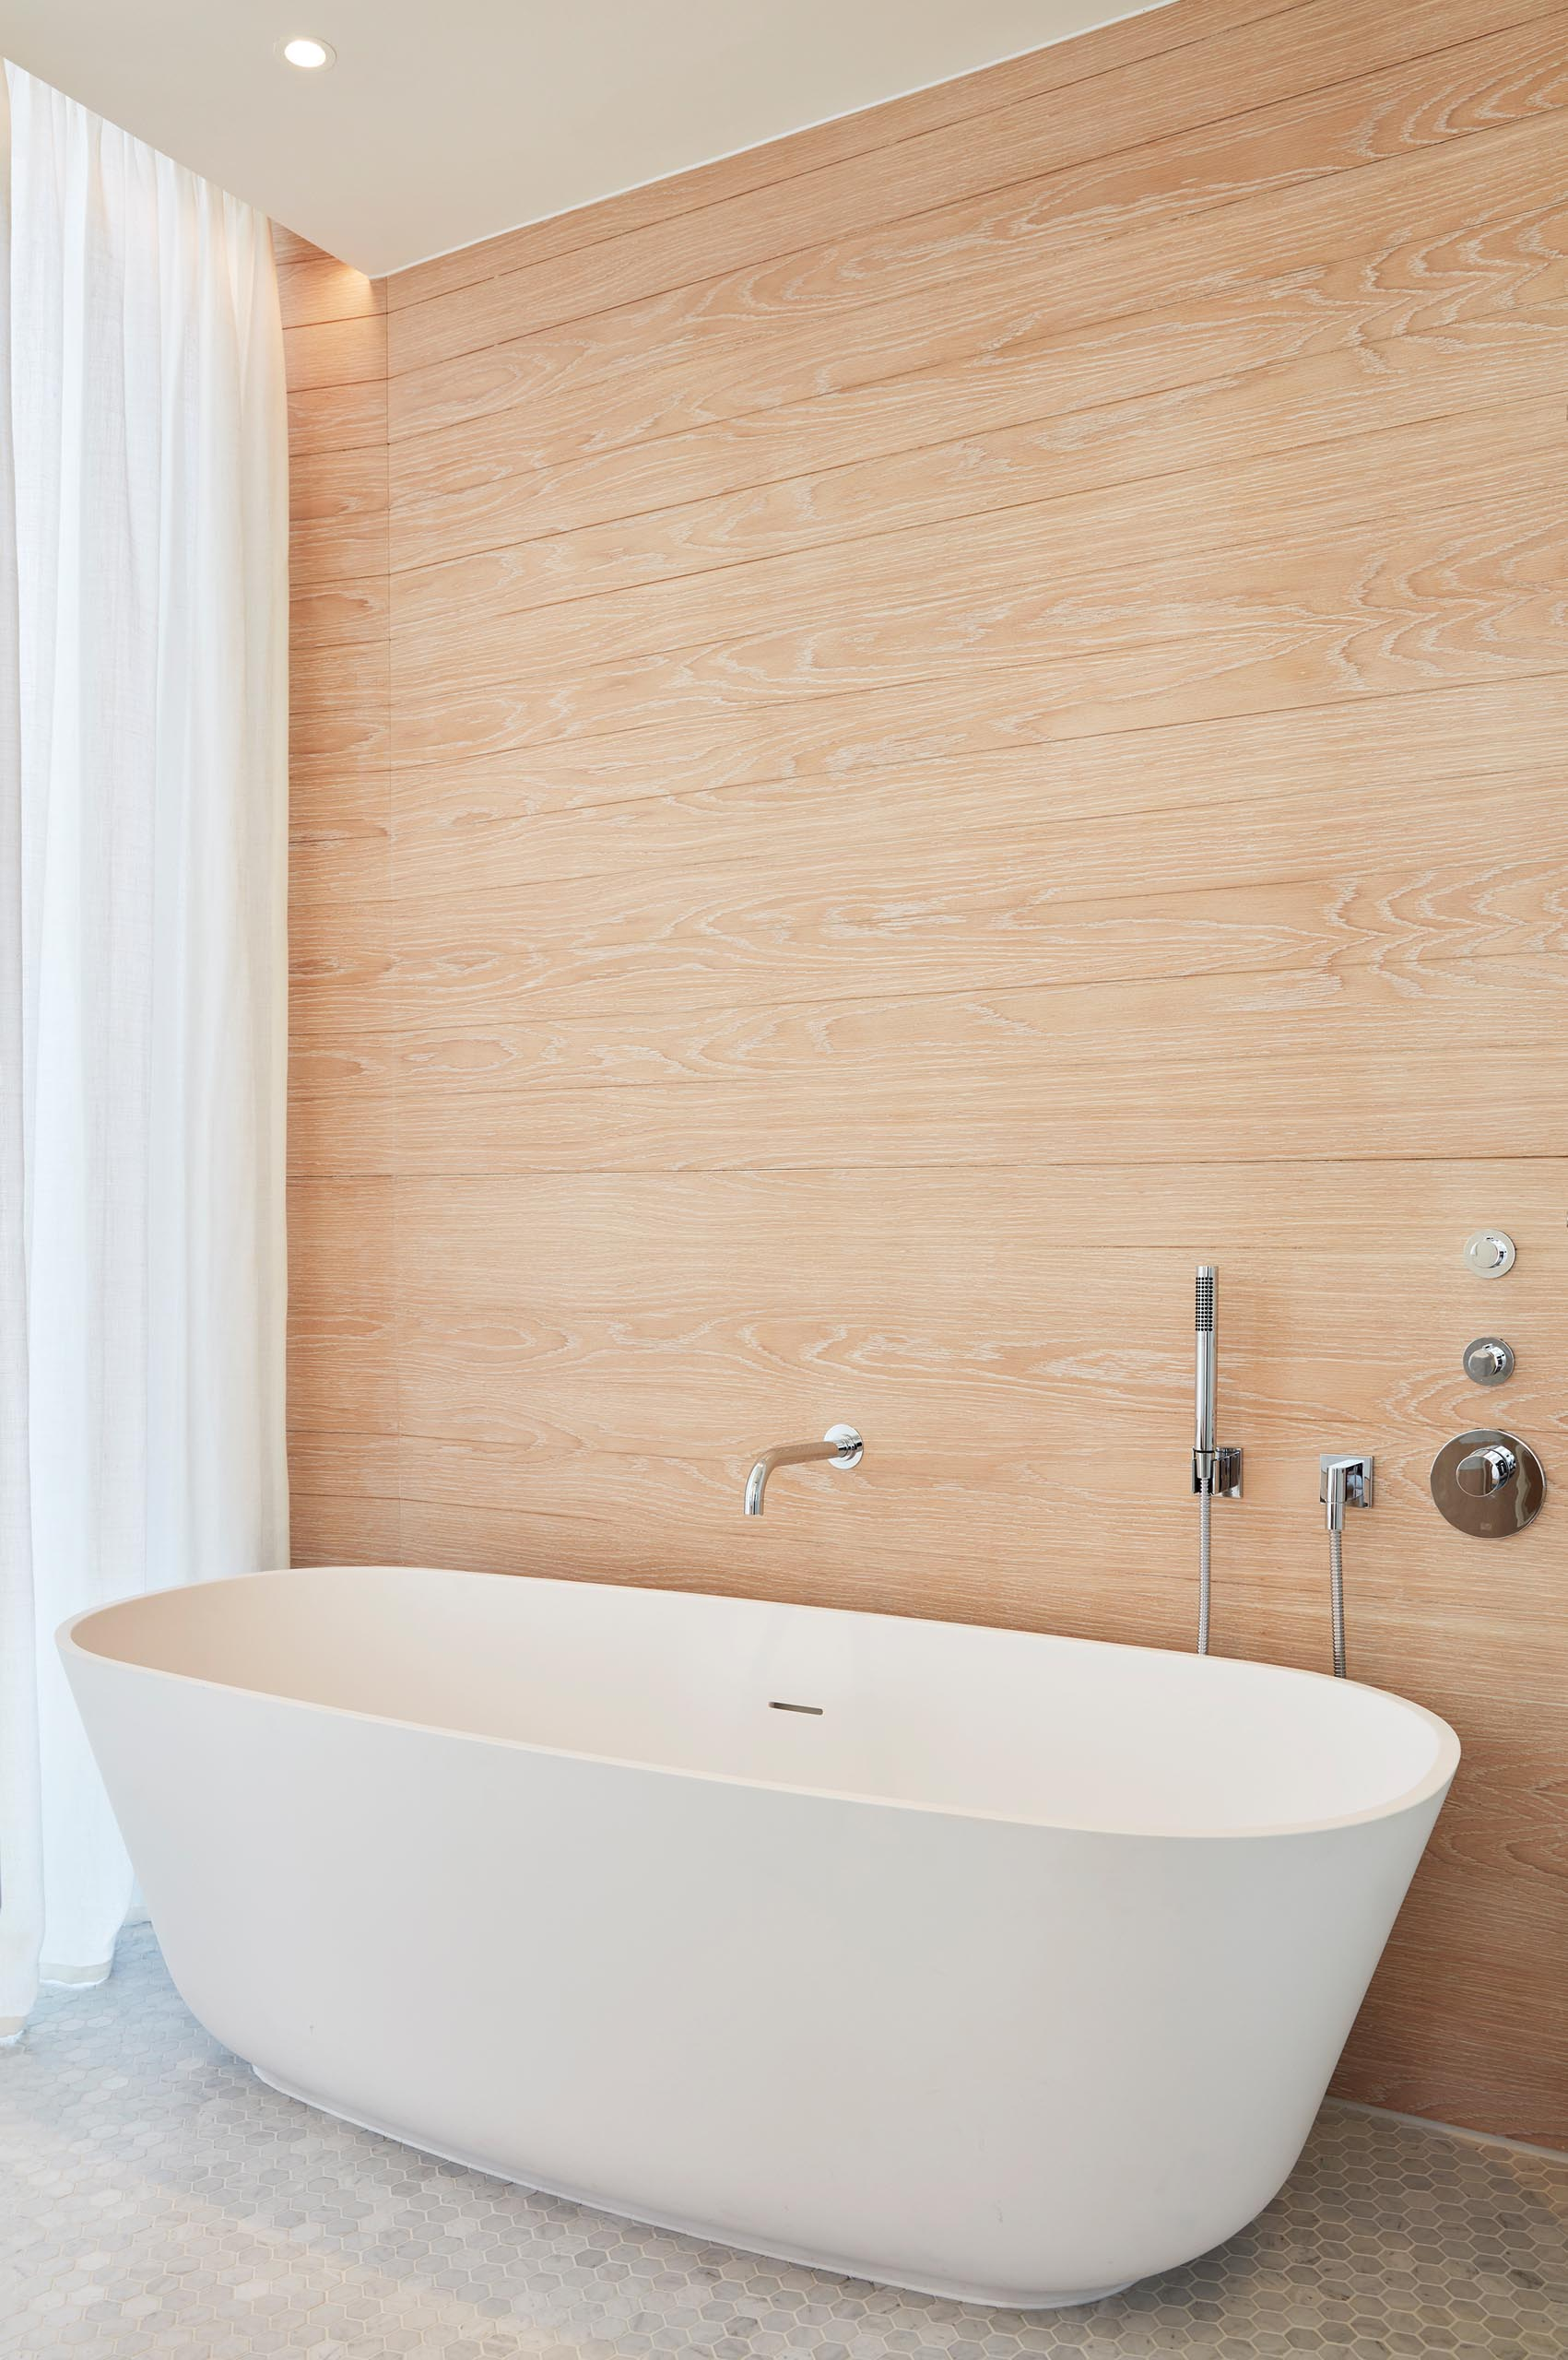 A wood accent wall acts as a backdrop for a freestanding white bathtub.